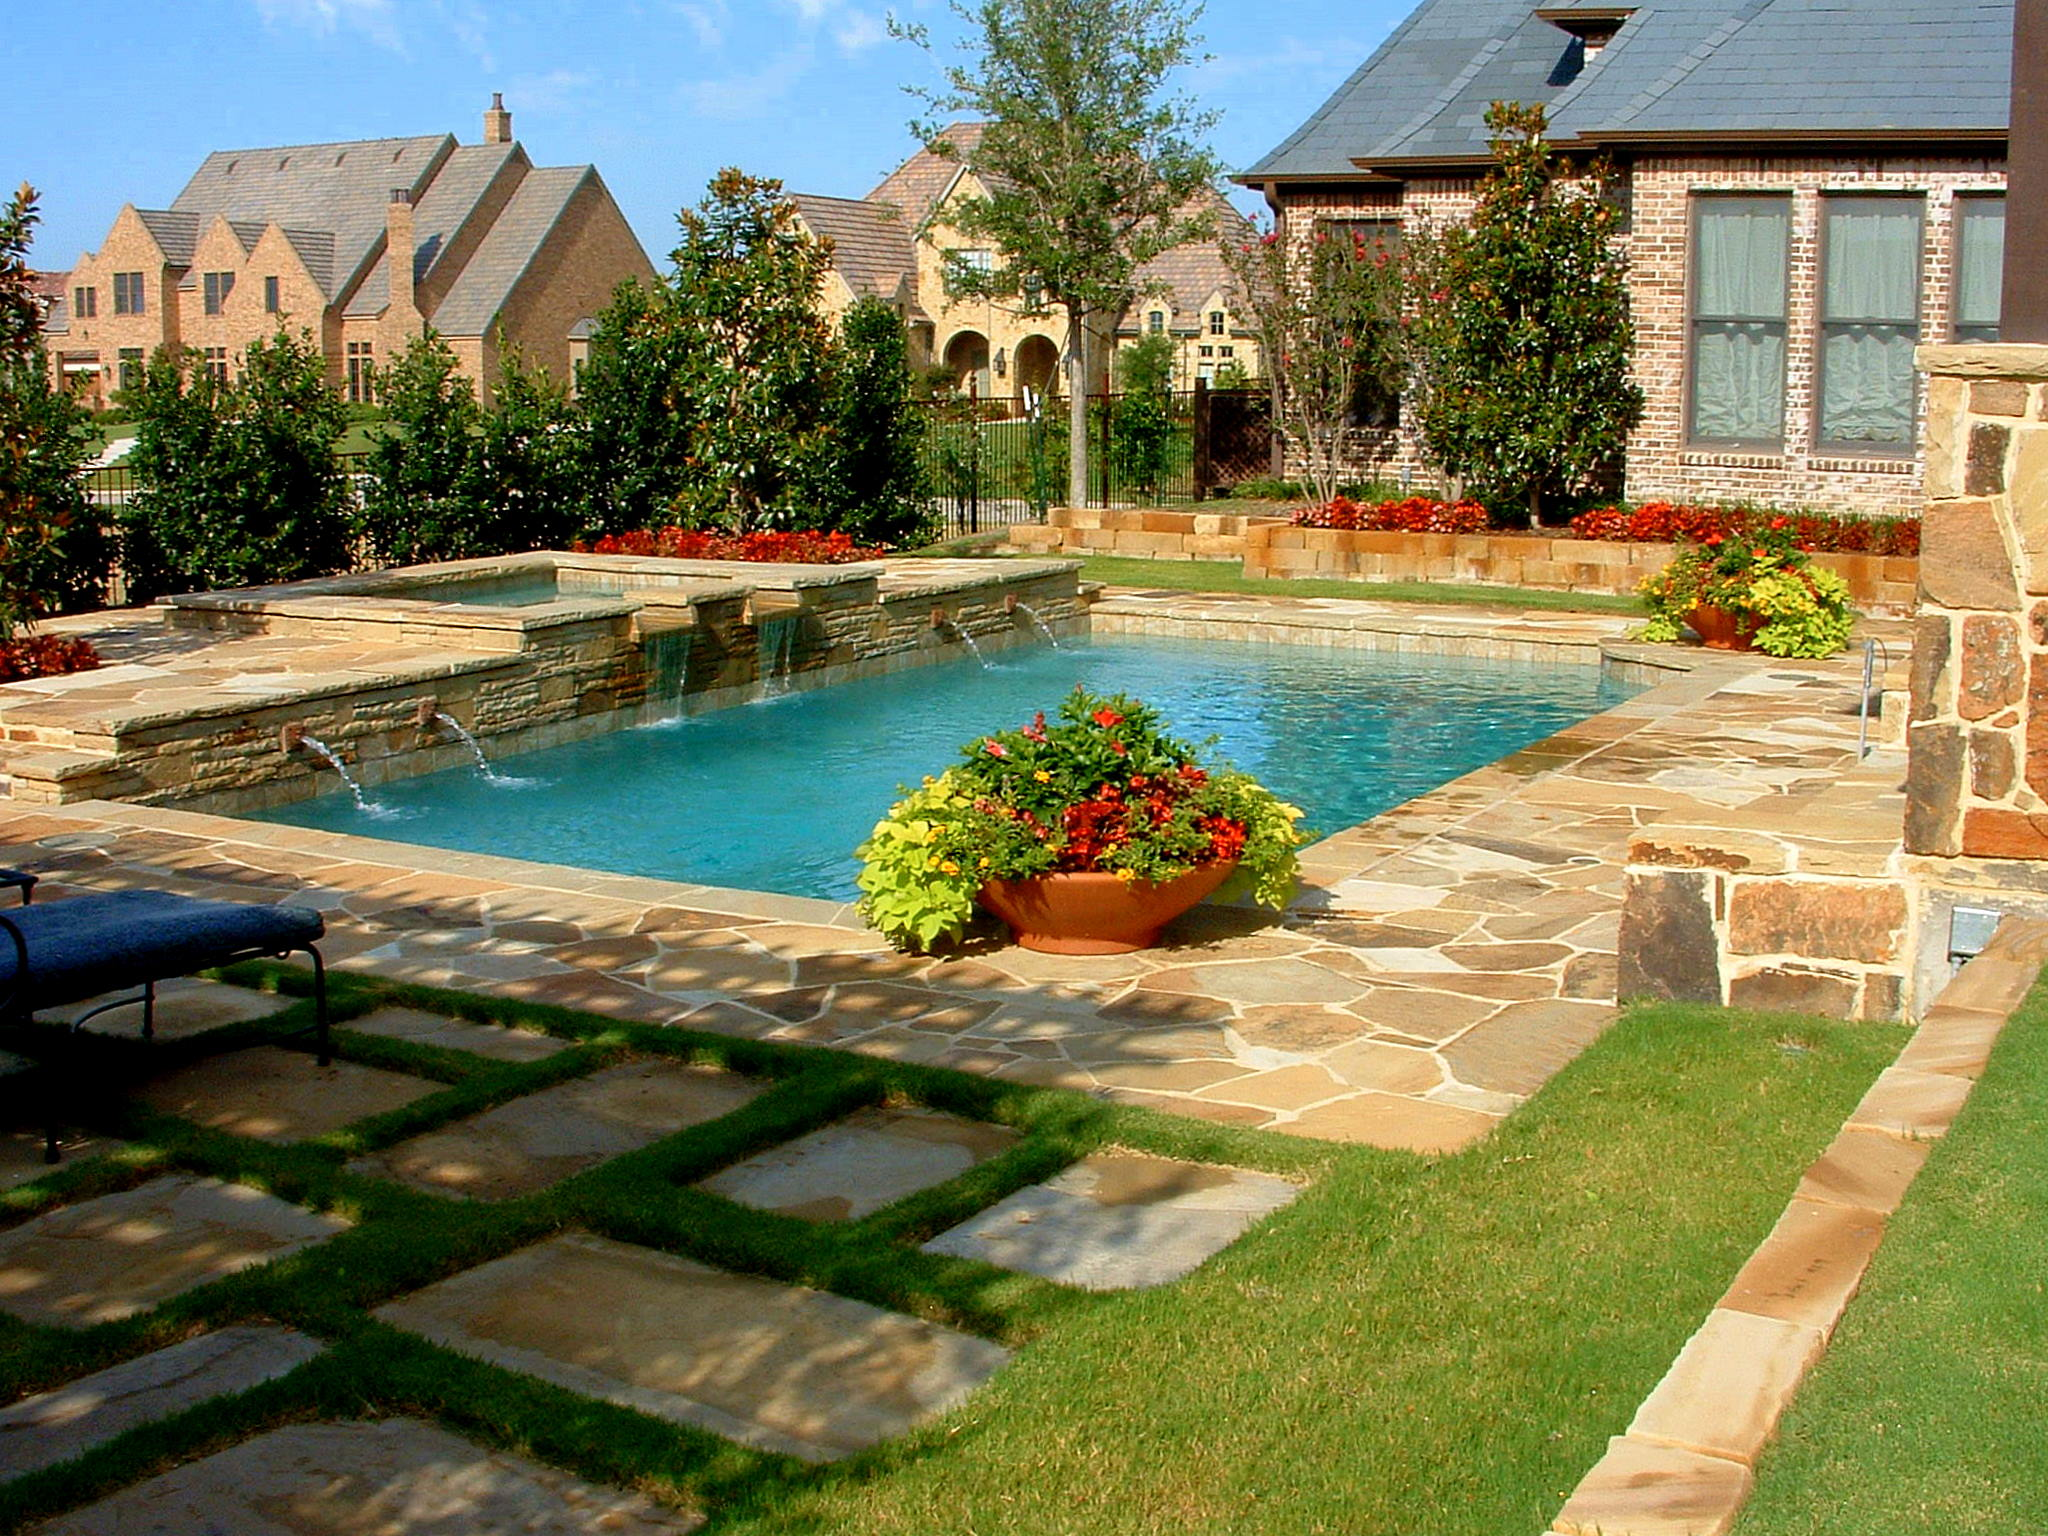 Backyard landscaping ideas swimming pool design for Best backyard garden designs